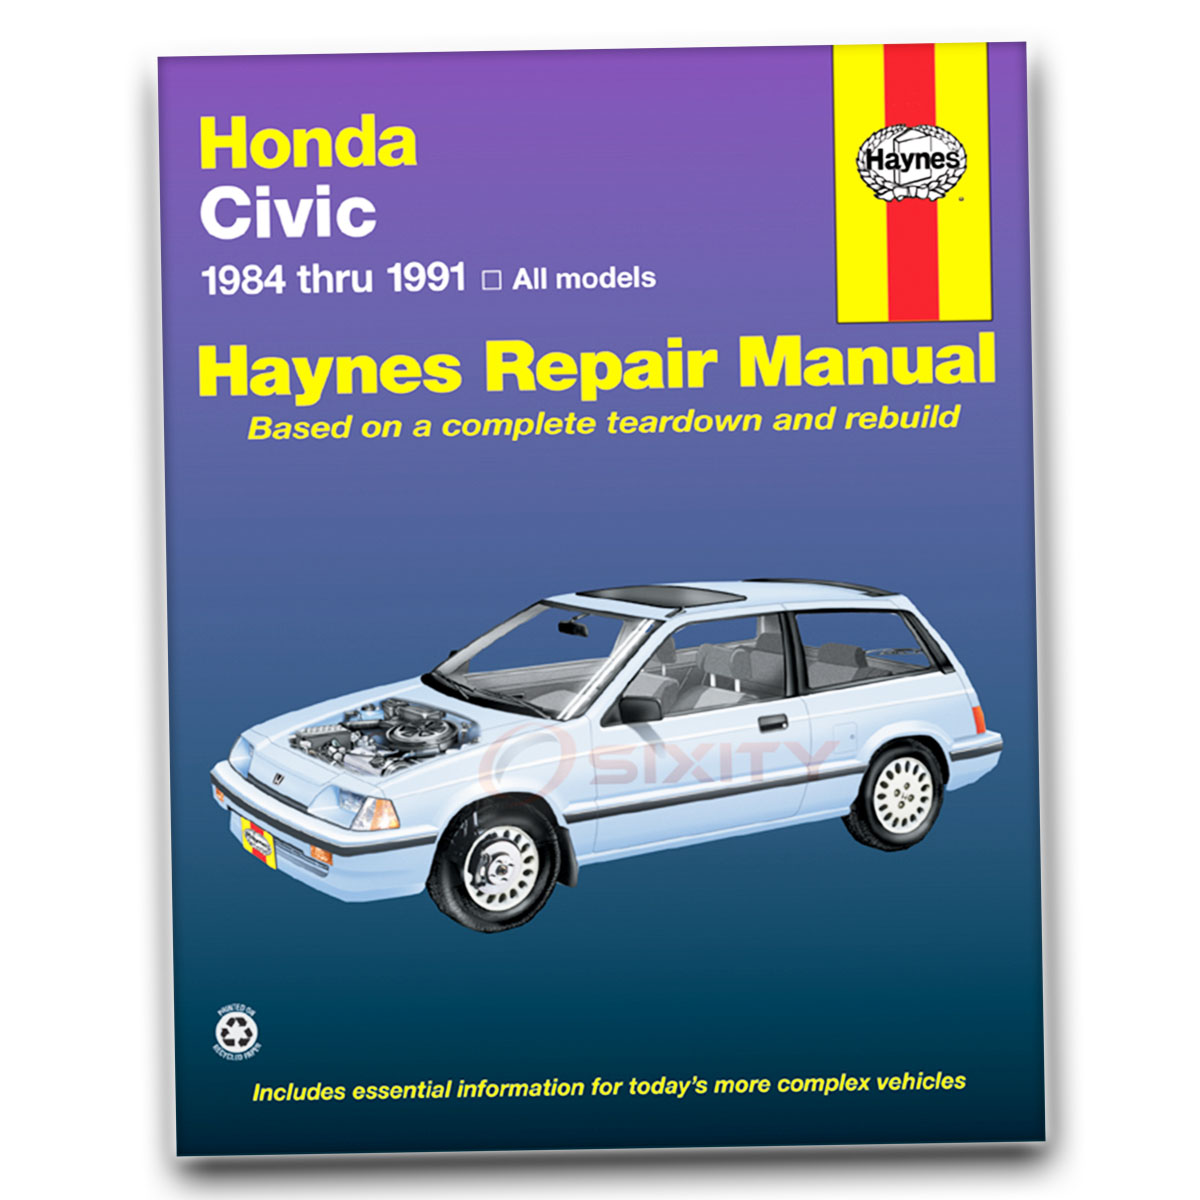 honda crx haynes repair manual base dx hf si shop service garage rh ebay com haynes manual honda jazz haynes manual honda civic